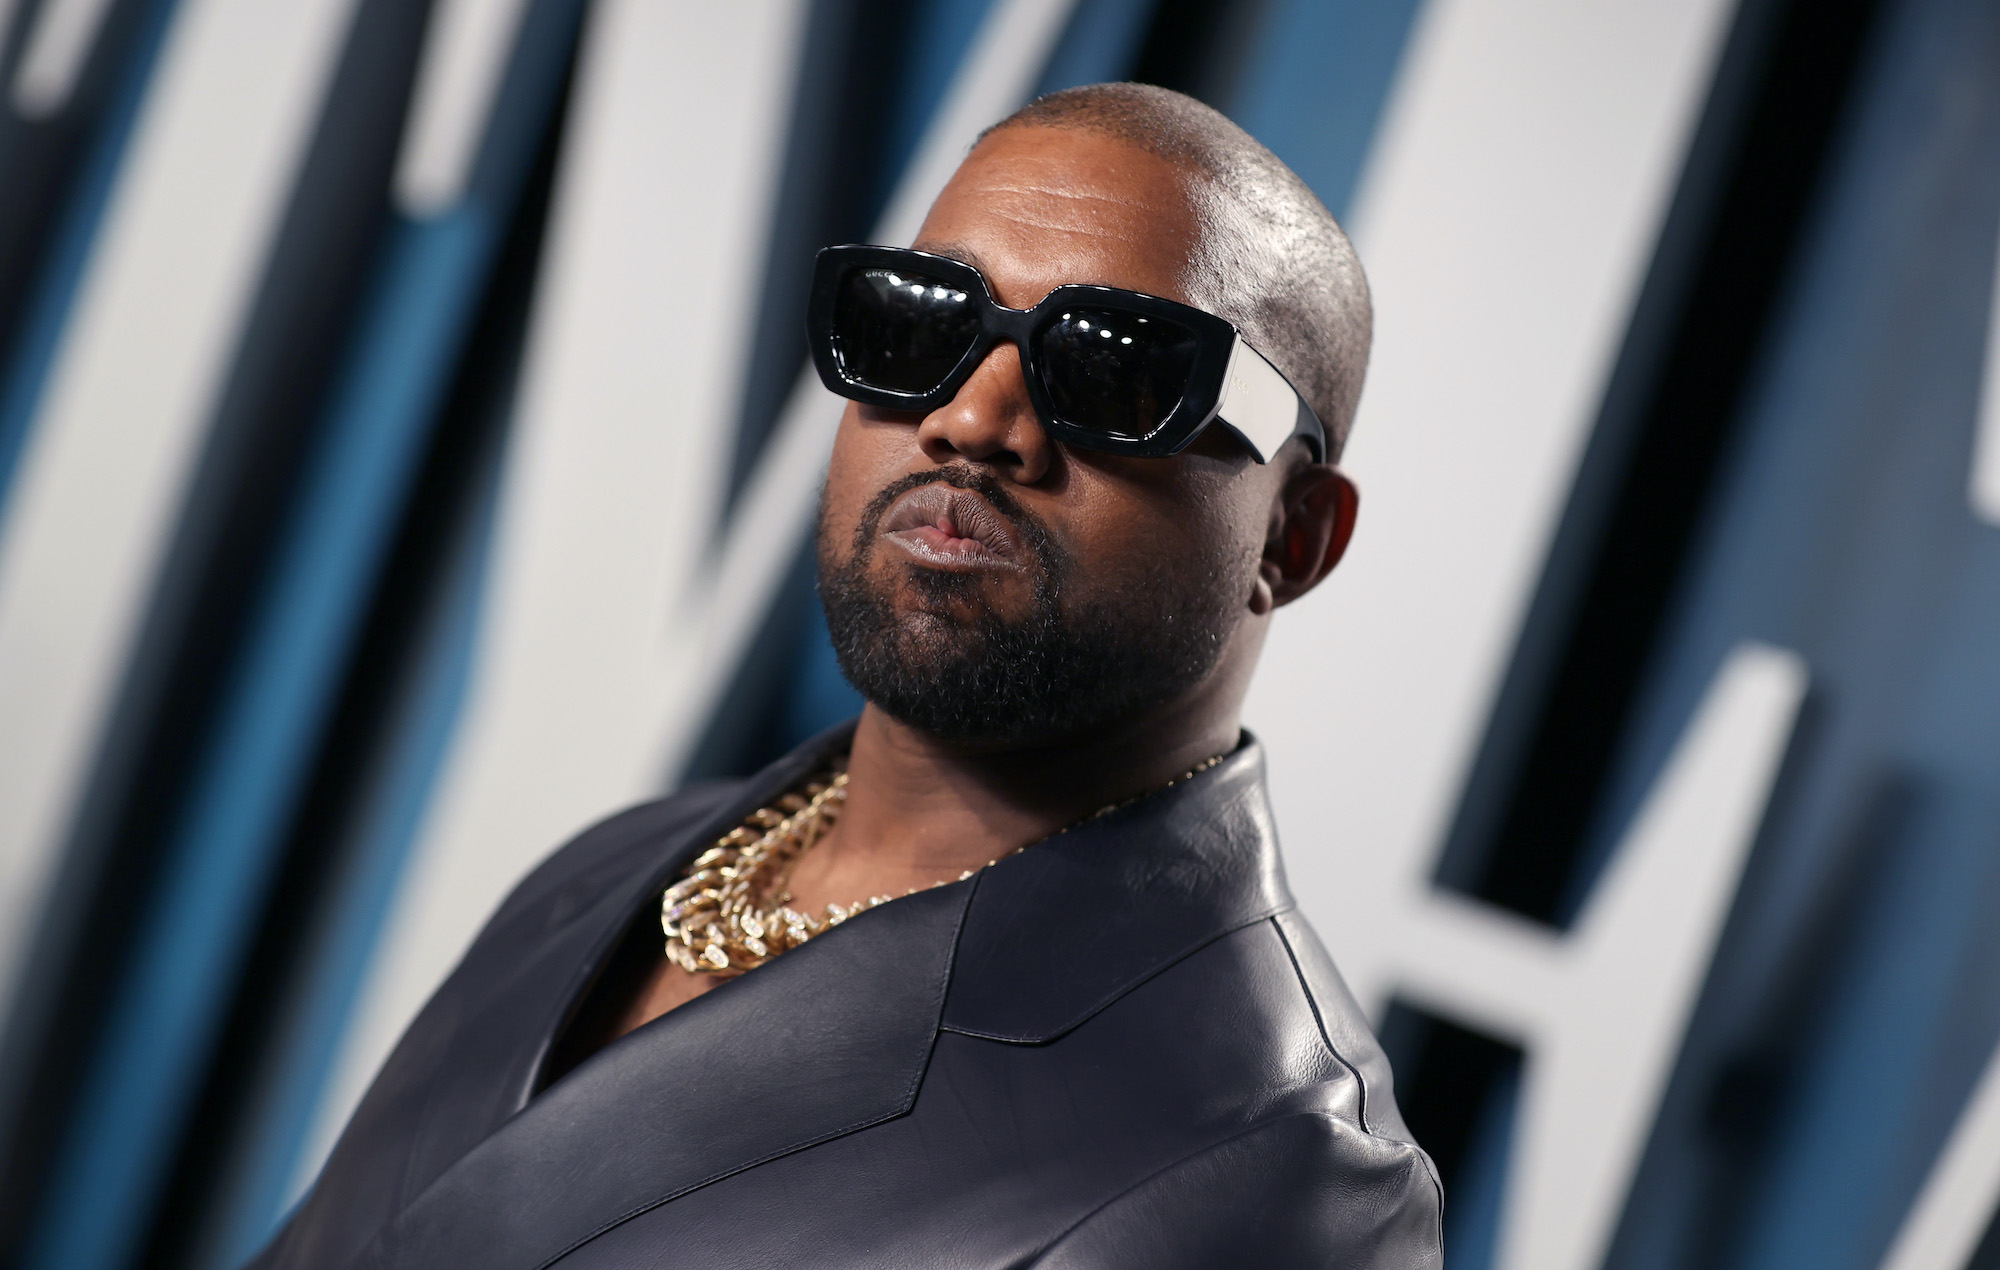 Kanye West becomes a billionaire during Covid-19